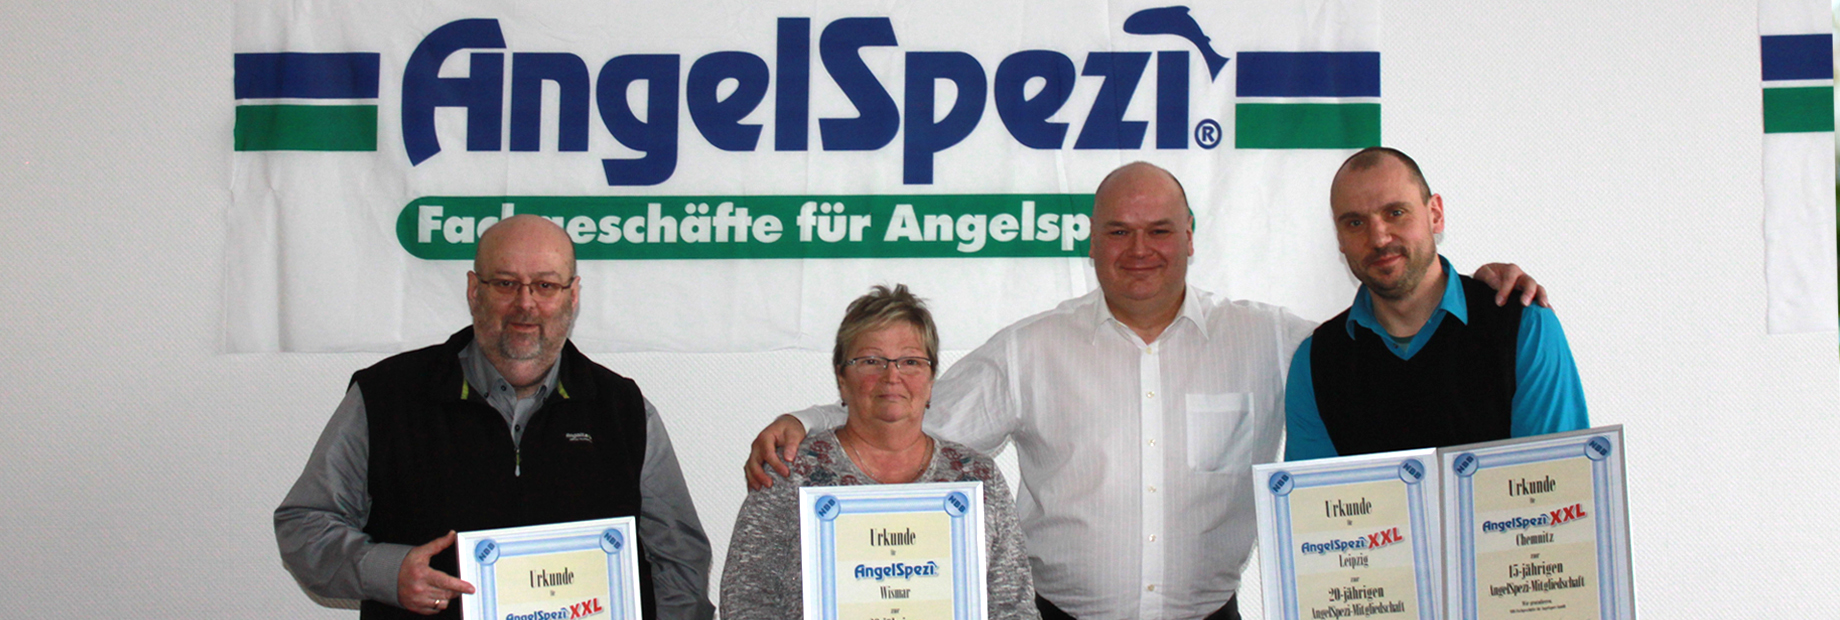 AngelSpezi-Tagung 2018 in Kassel